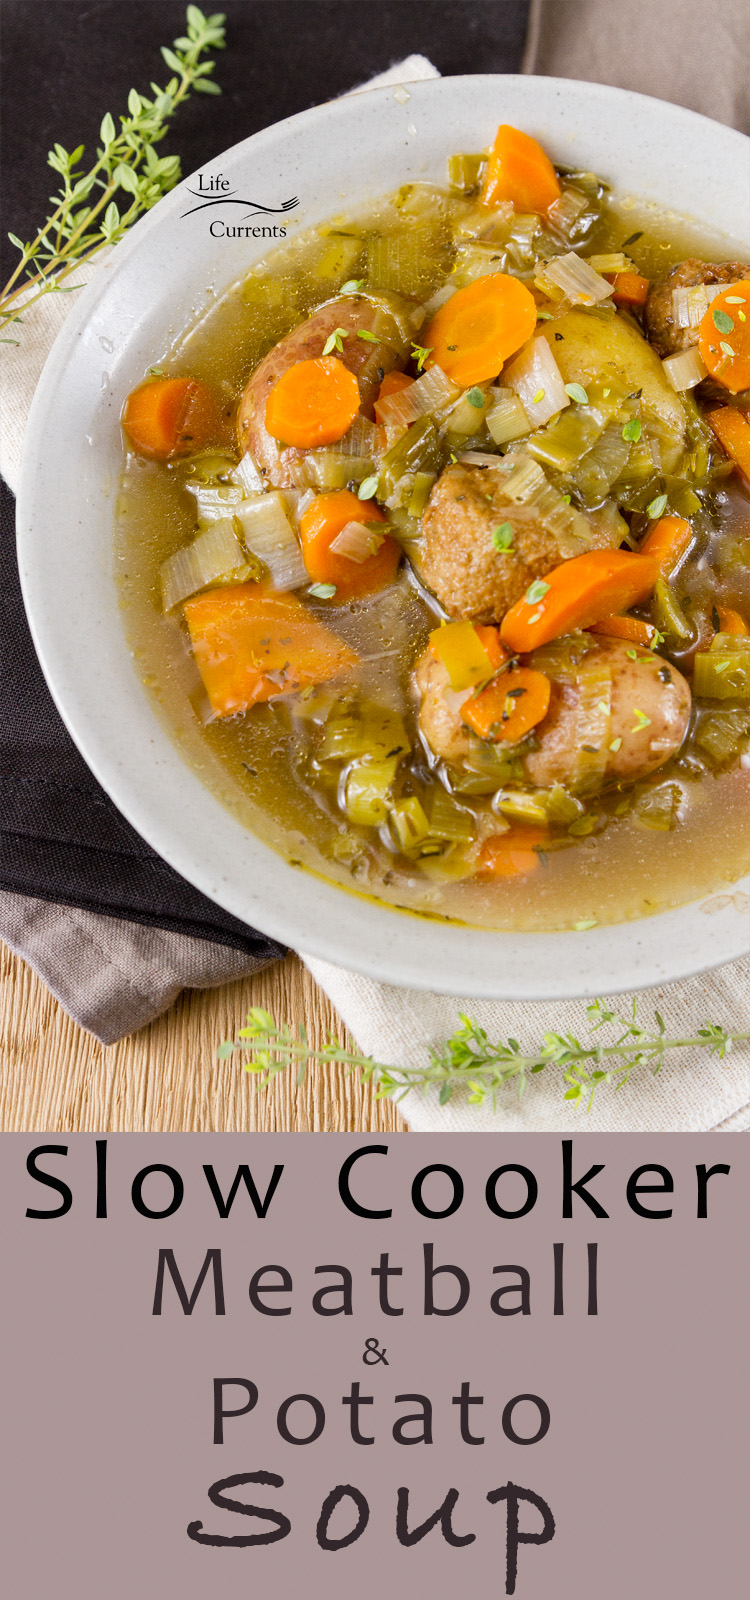 Slow Cooker Meatball and Potato Soup I love this herby brothy veggie filled soup. It's rich and filling, without being heavy and thick, and it's nice and healthy, and loaded with flavor #slowcooker #crockpot #soup #vegetarian #meatlessMonday